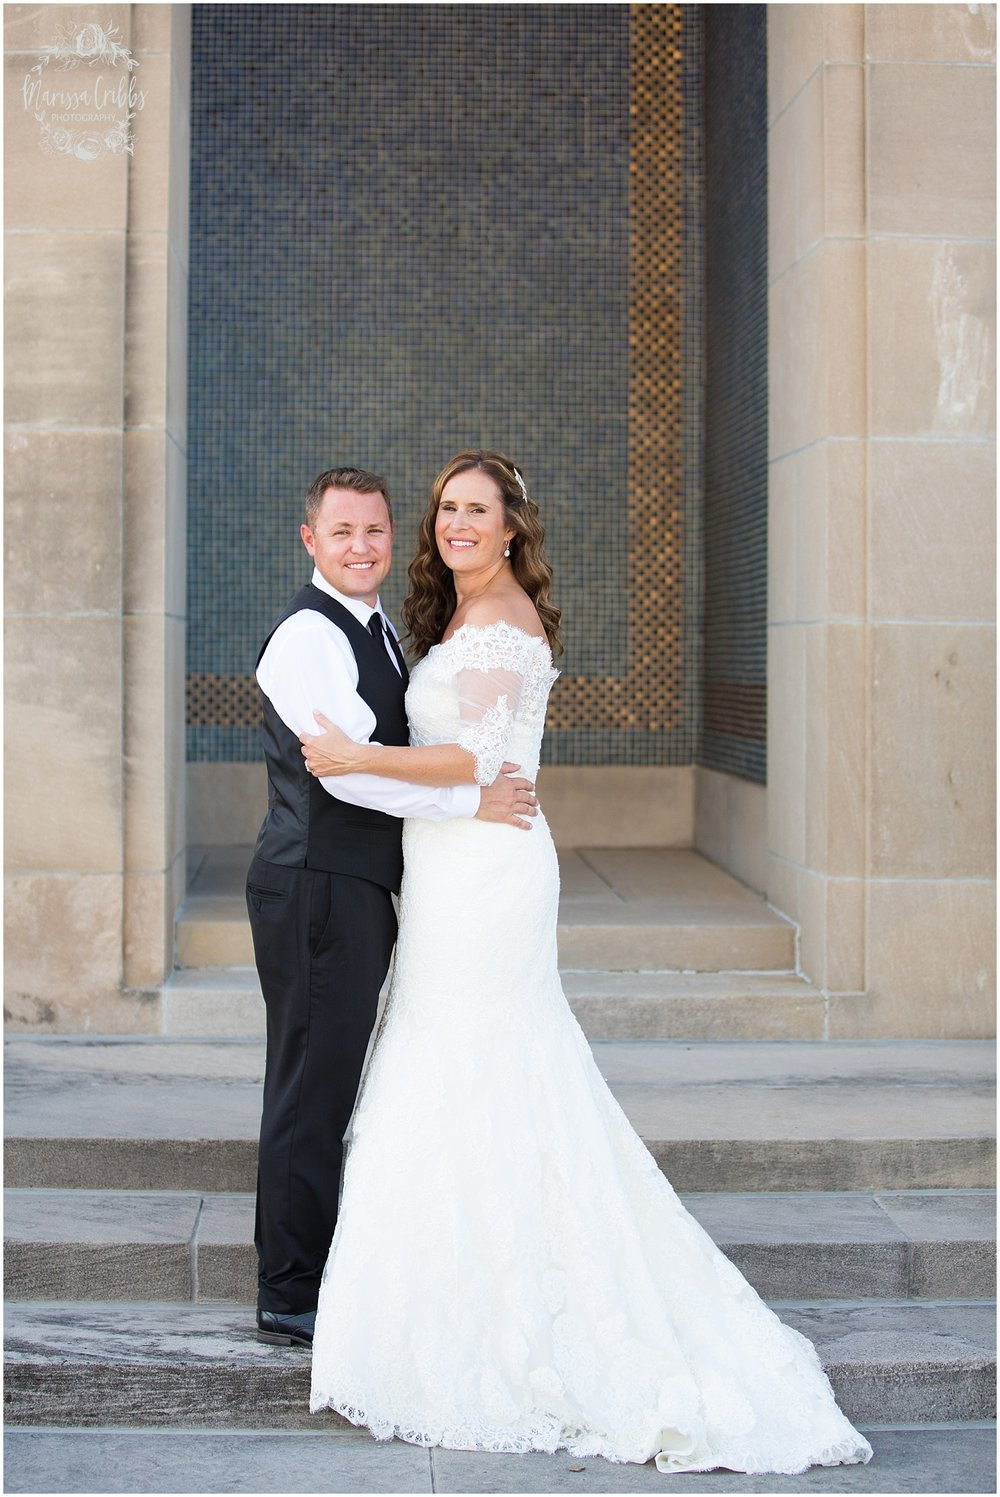 Madrid Theatre Wedding | Union Station | Liberty Memorial | KC Wedding Photographer | Marissa Cribbs Photography_0550.jpg